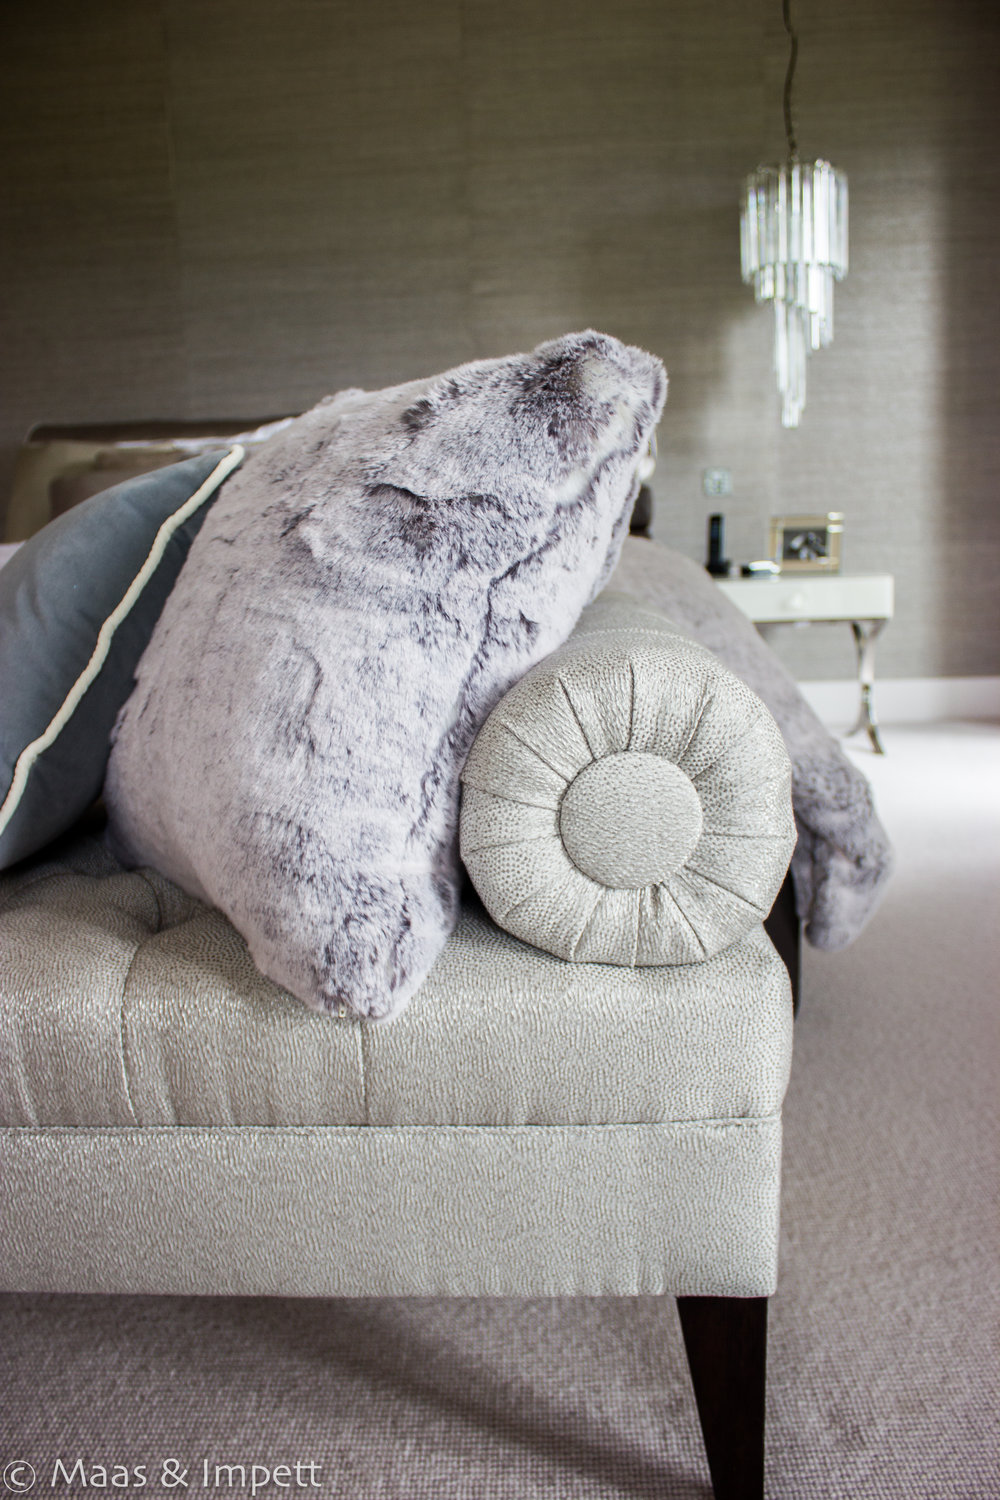 Unpholstered Chaise Longue by Hampshire based Interior designers and fabric specialists, Maas & Impett.